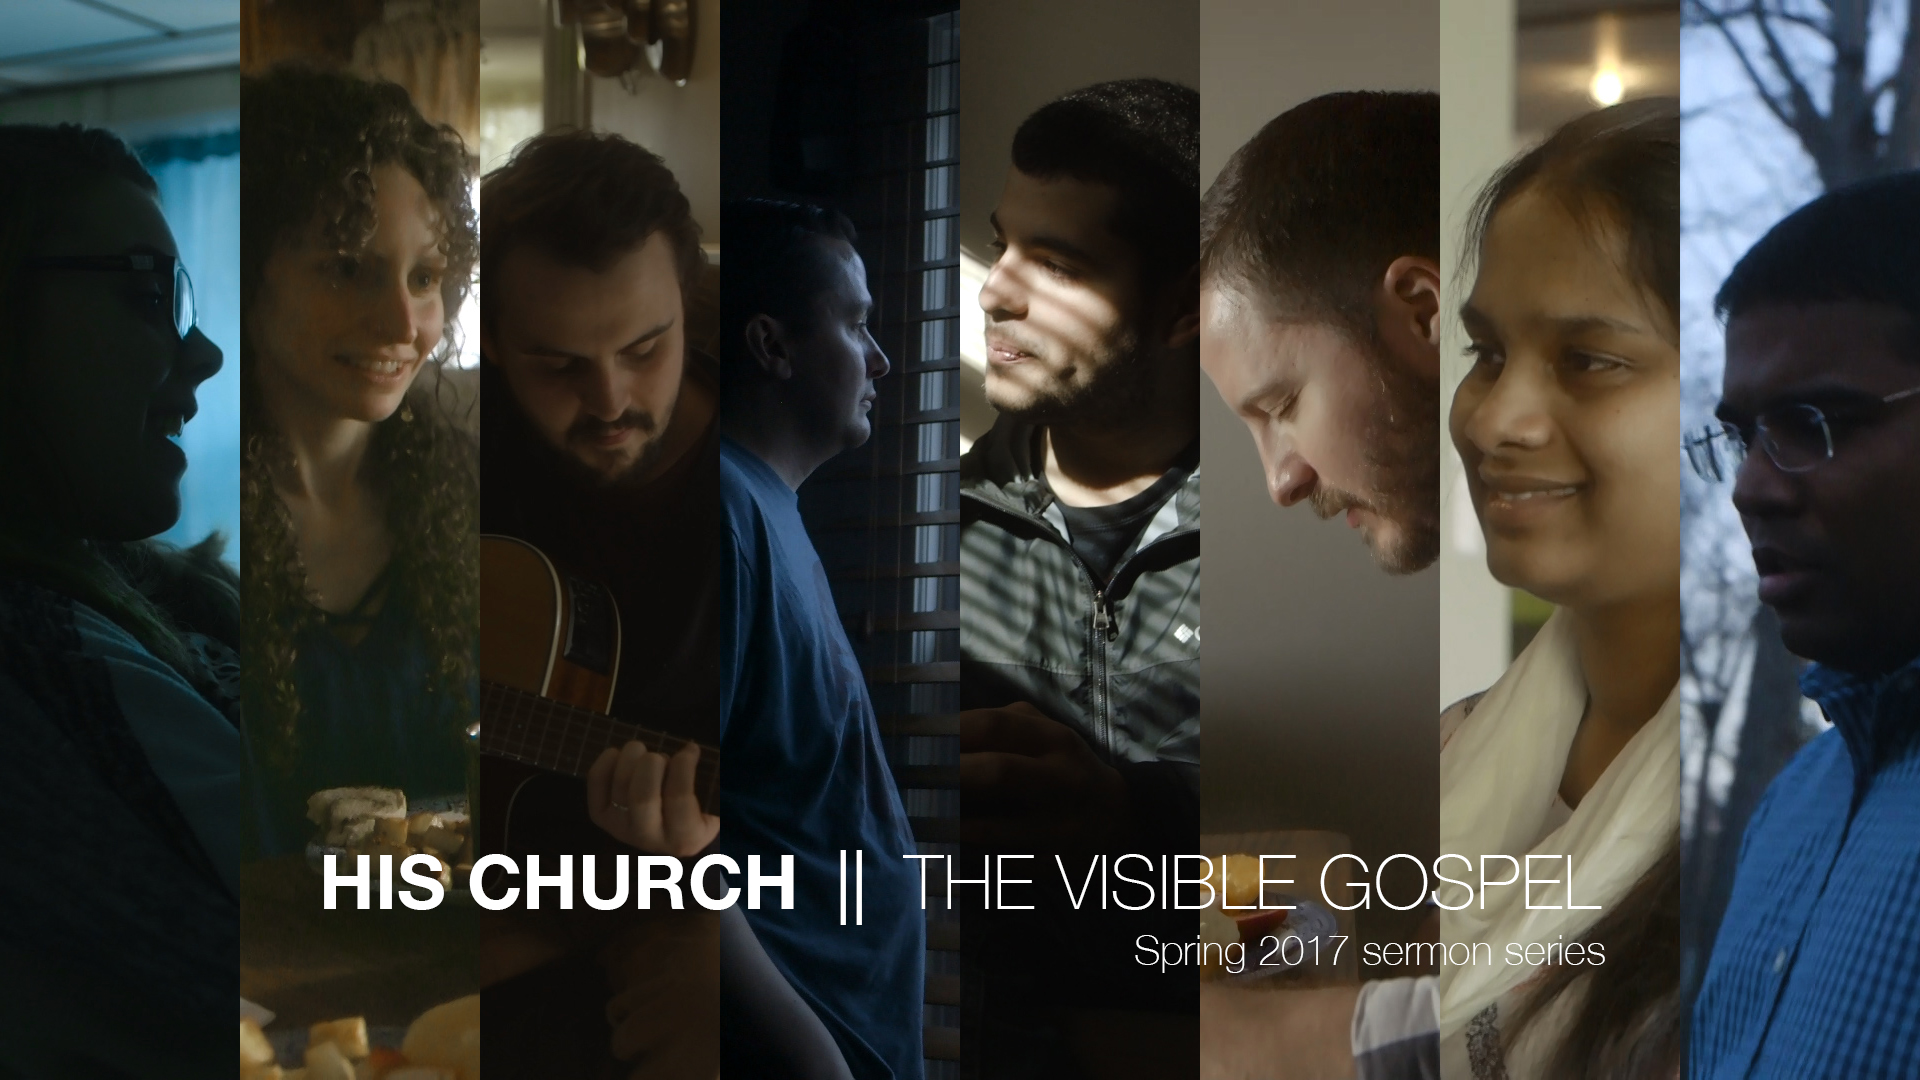 What does it mean to be the church of Christ? How should we act? What should we do? We let the scriptures form our character.